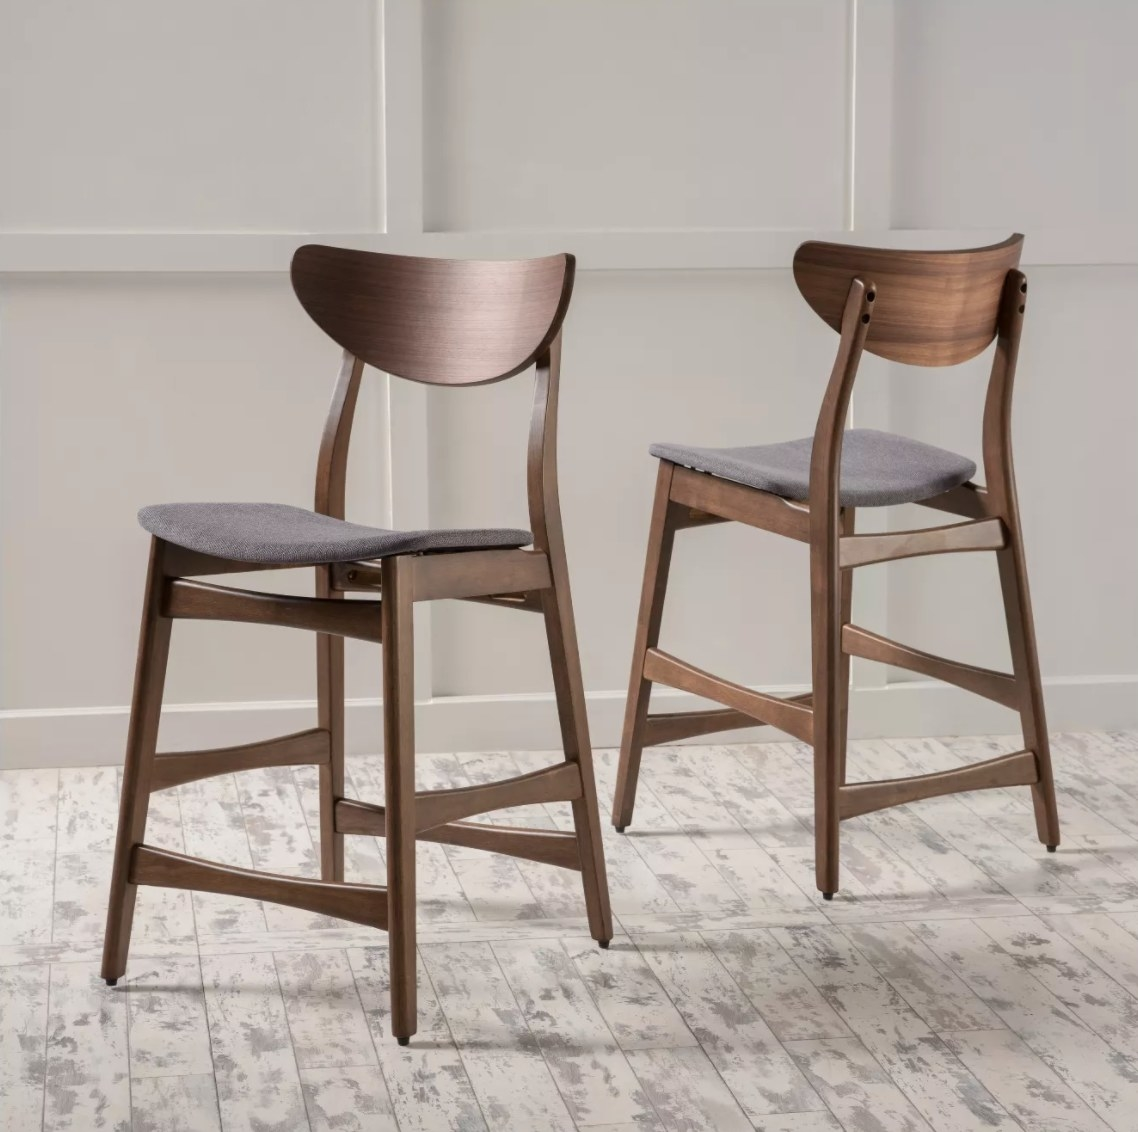 The set of two counter height barstool chairs with dark gray seats